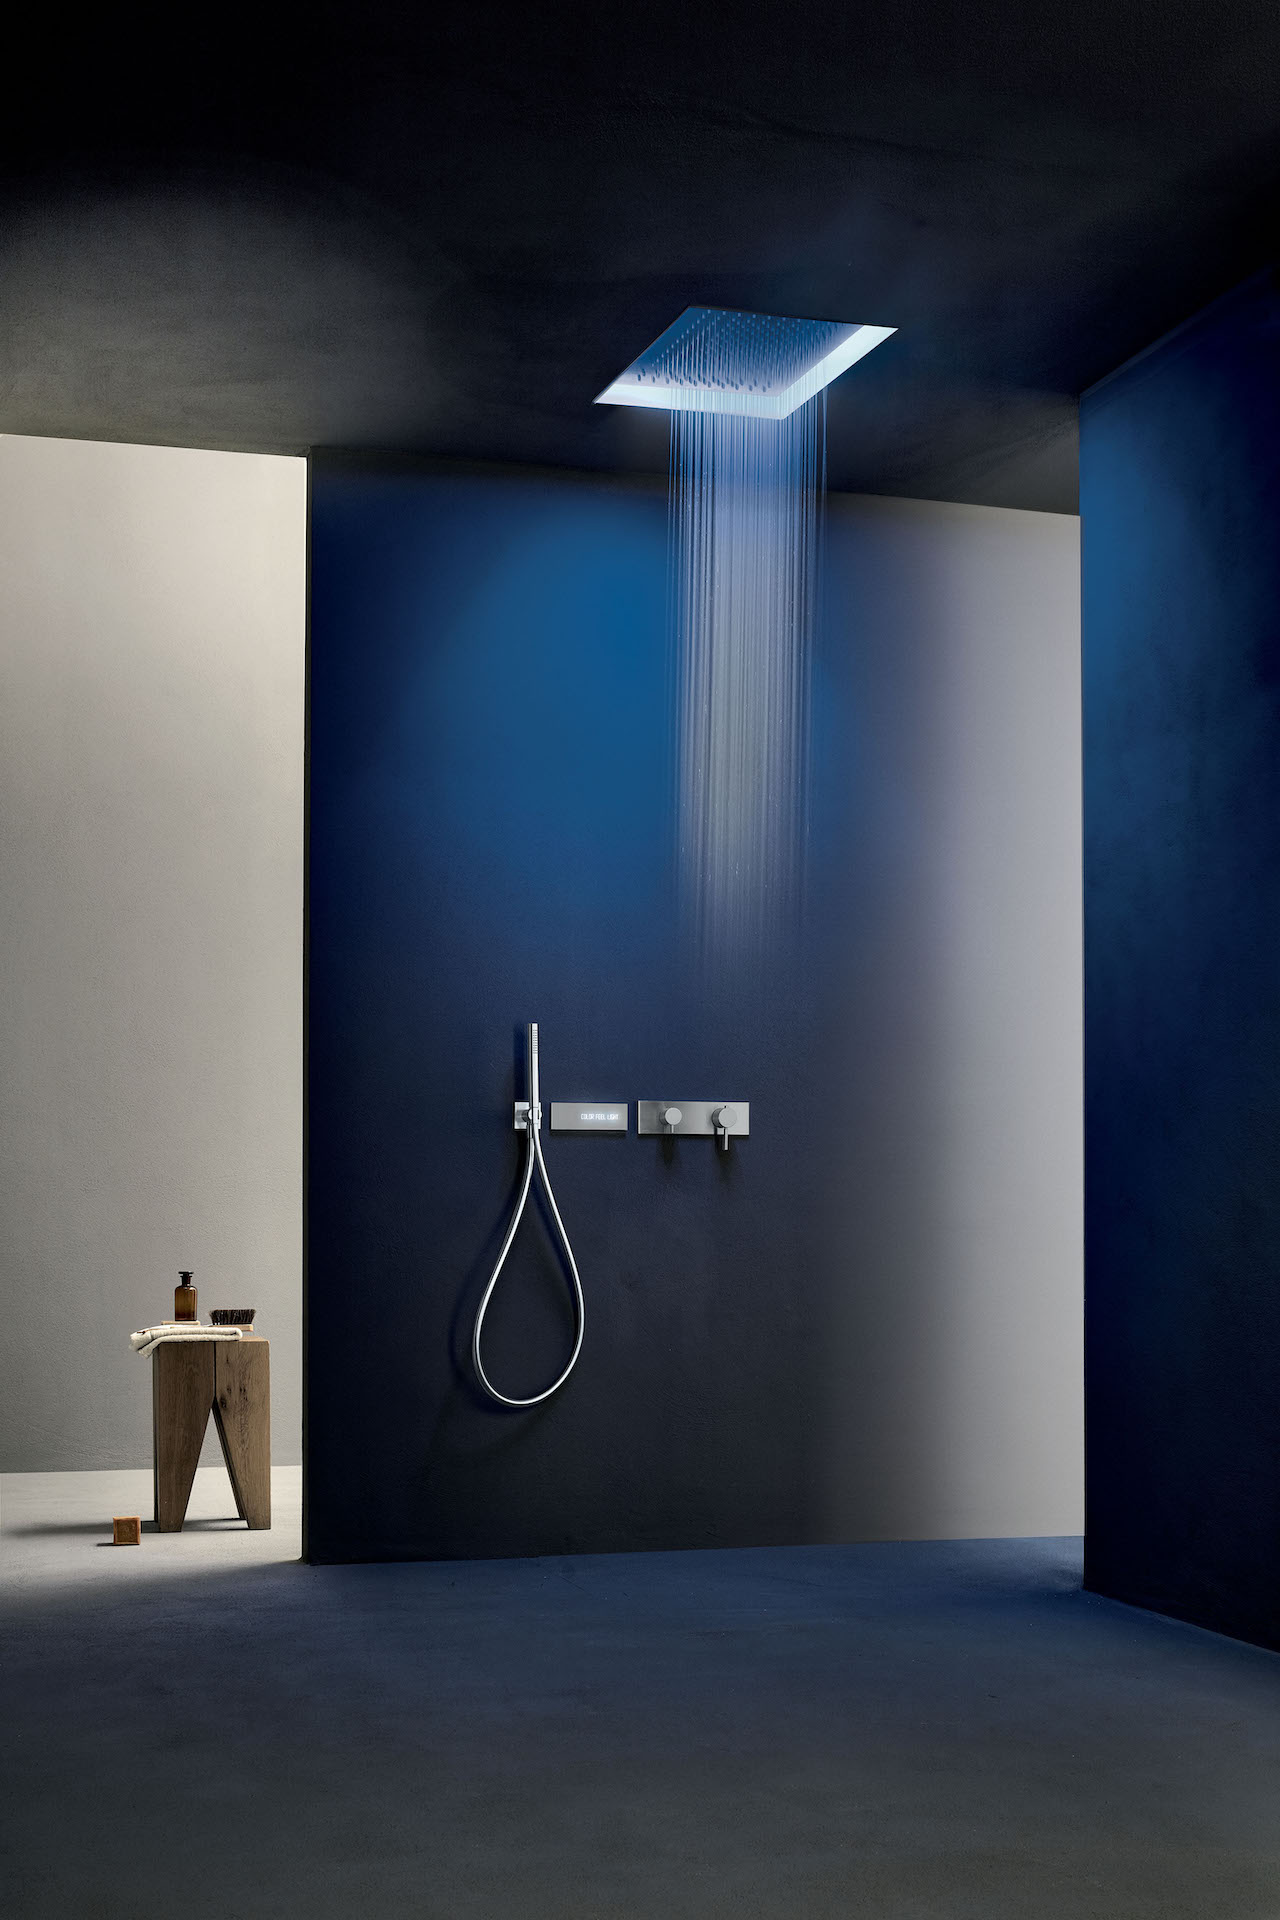 Acquafit Dream recessed shower head 50x35 cm, Fantini.